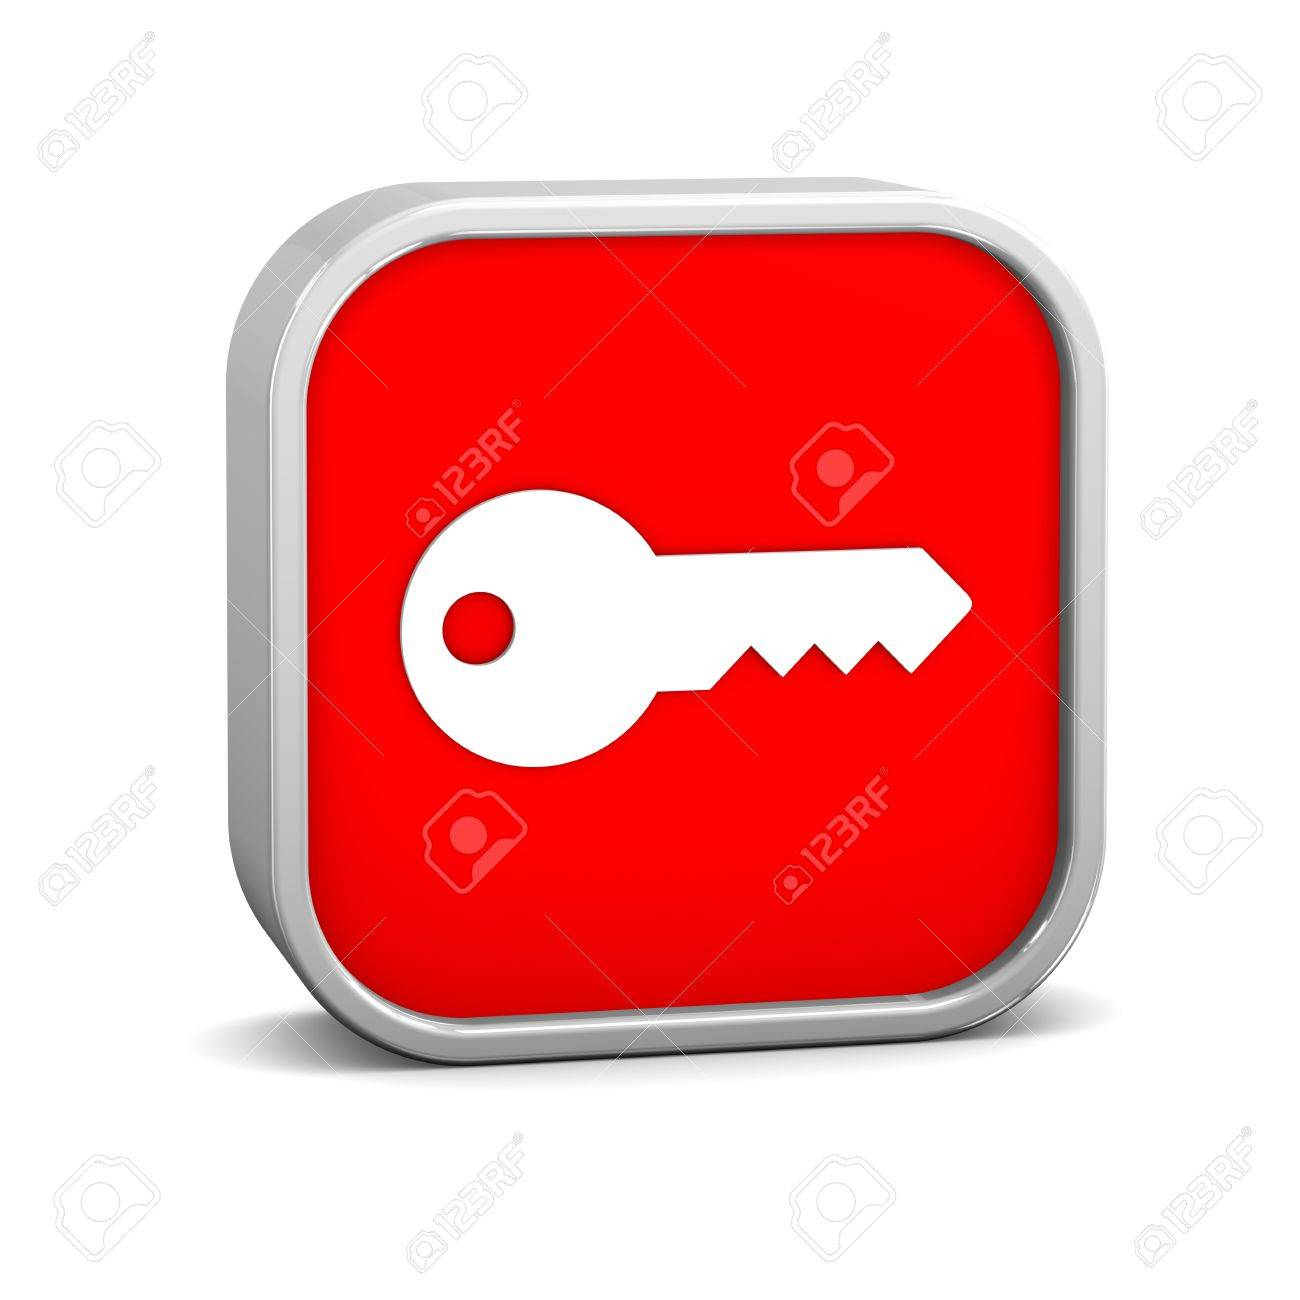 Key Sign on a white background. Part of a series. - 12423410